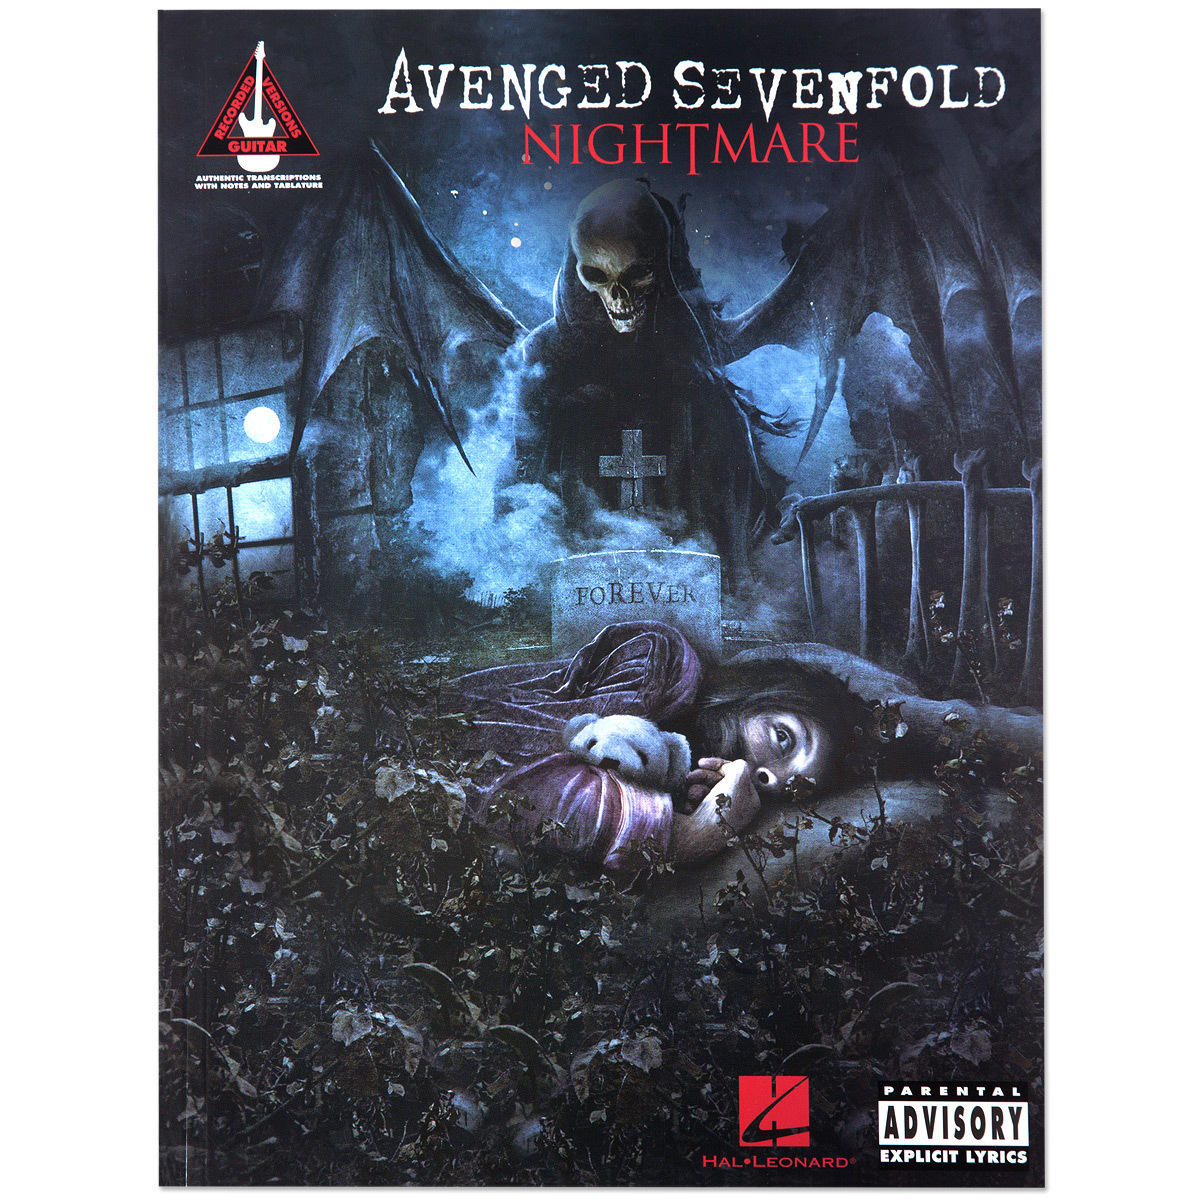 Avenged Sevenfold – Nightmare Songbook